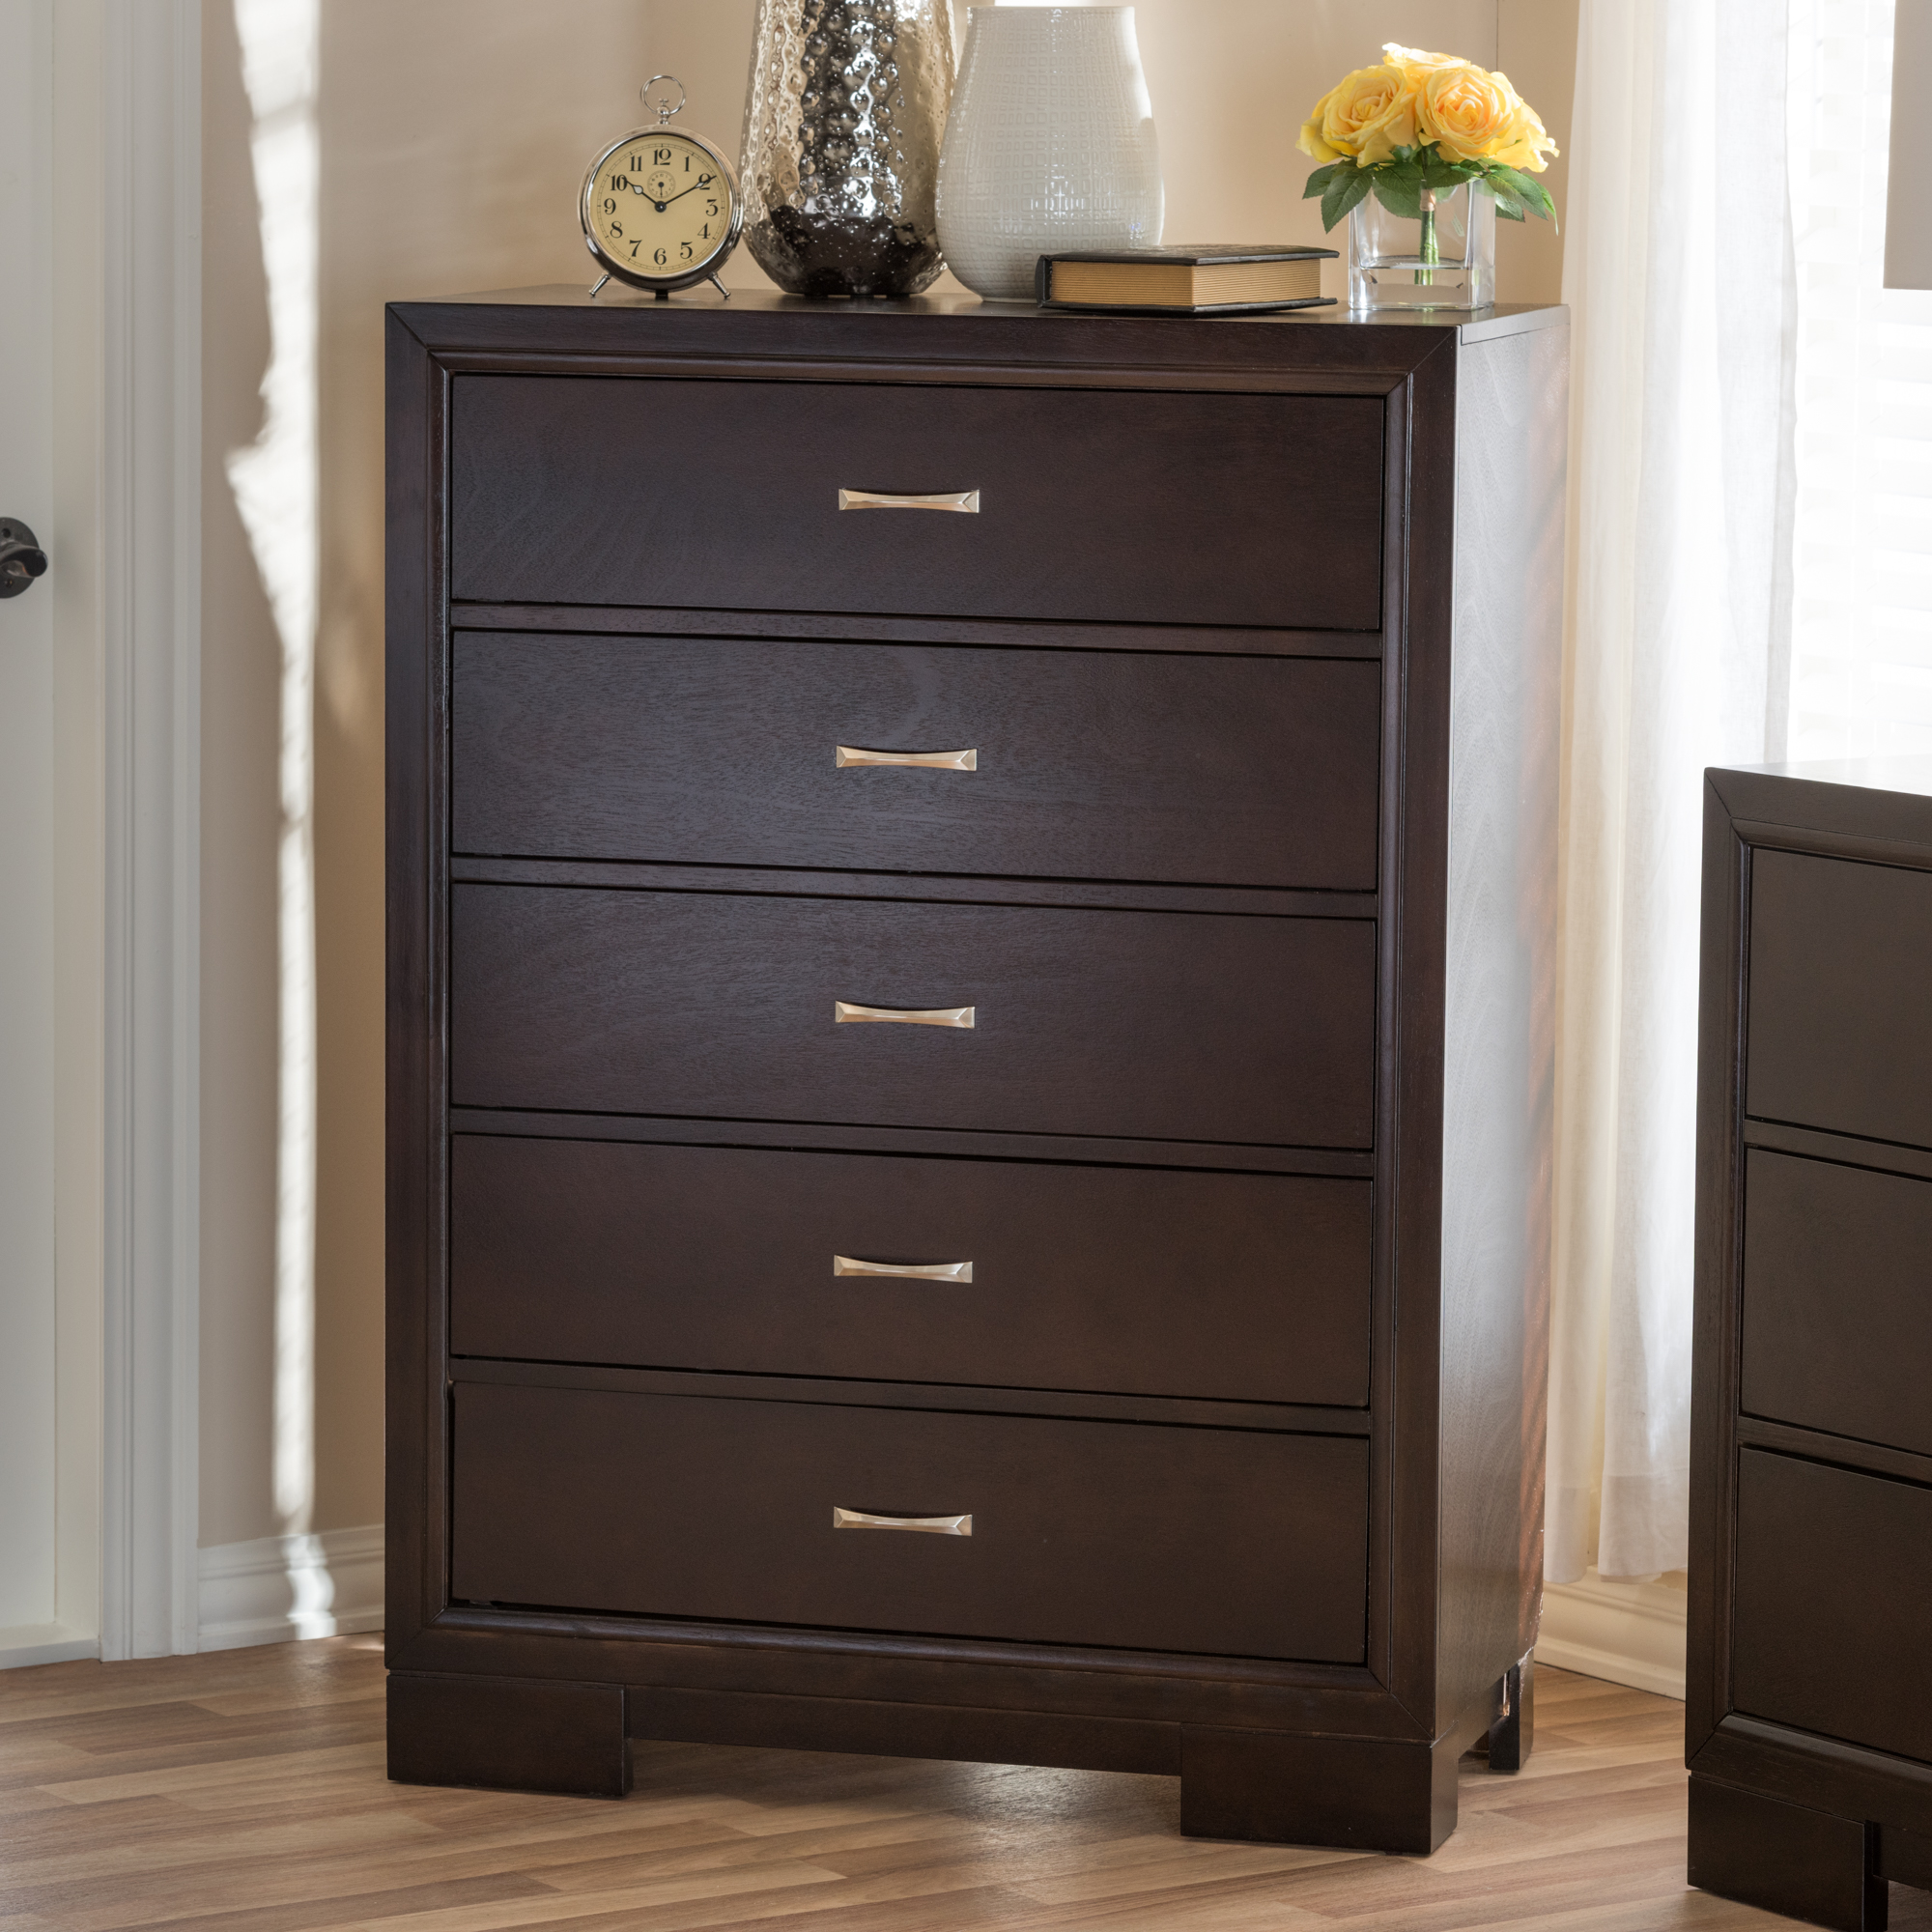 Baxton Studio Padma Modern and Contemporary Walnut Brown Finished Wood  5-Drawer Chest